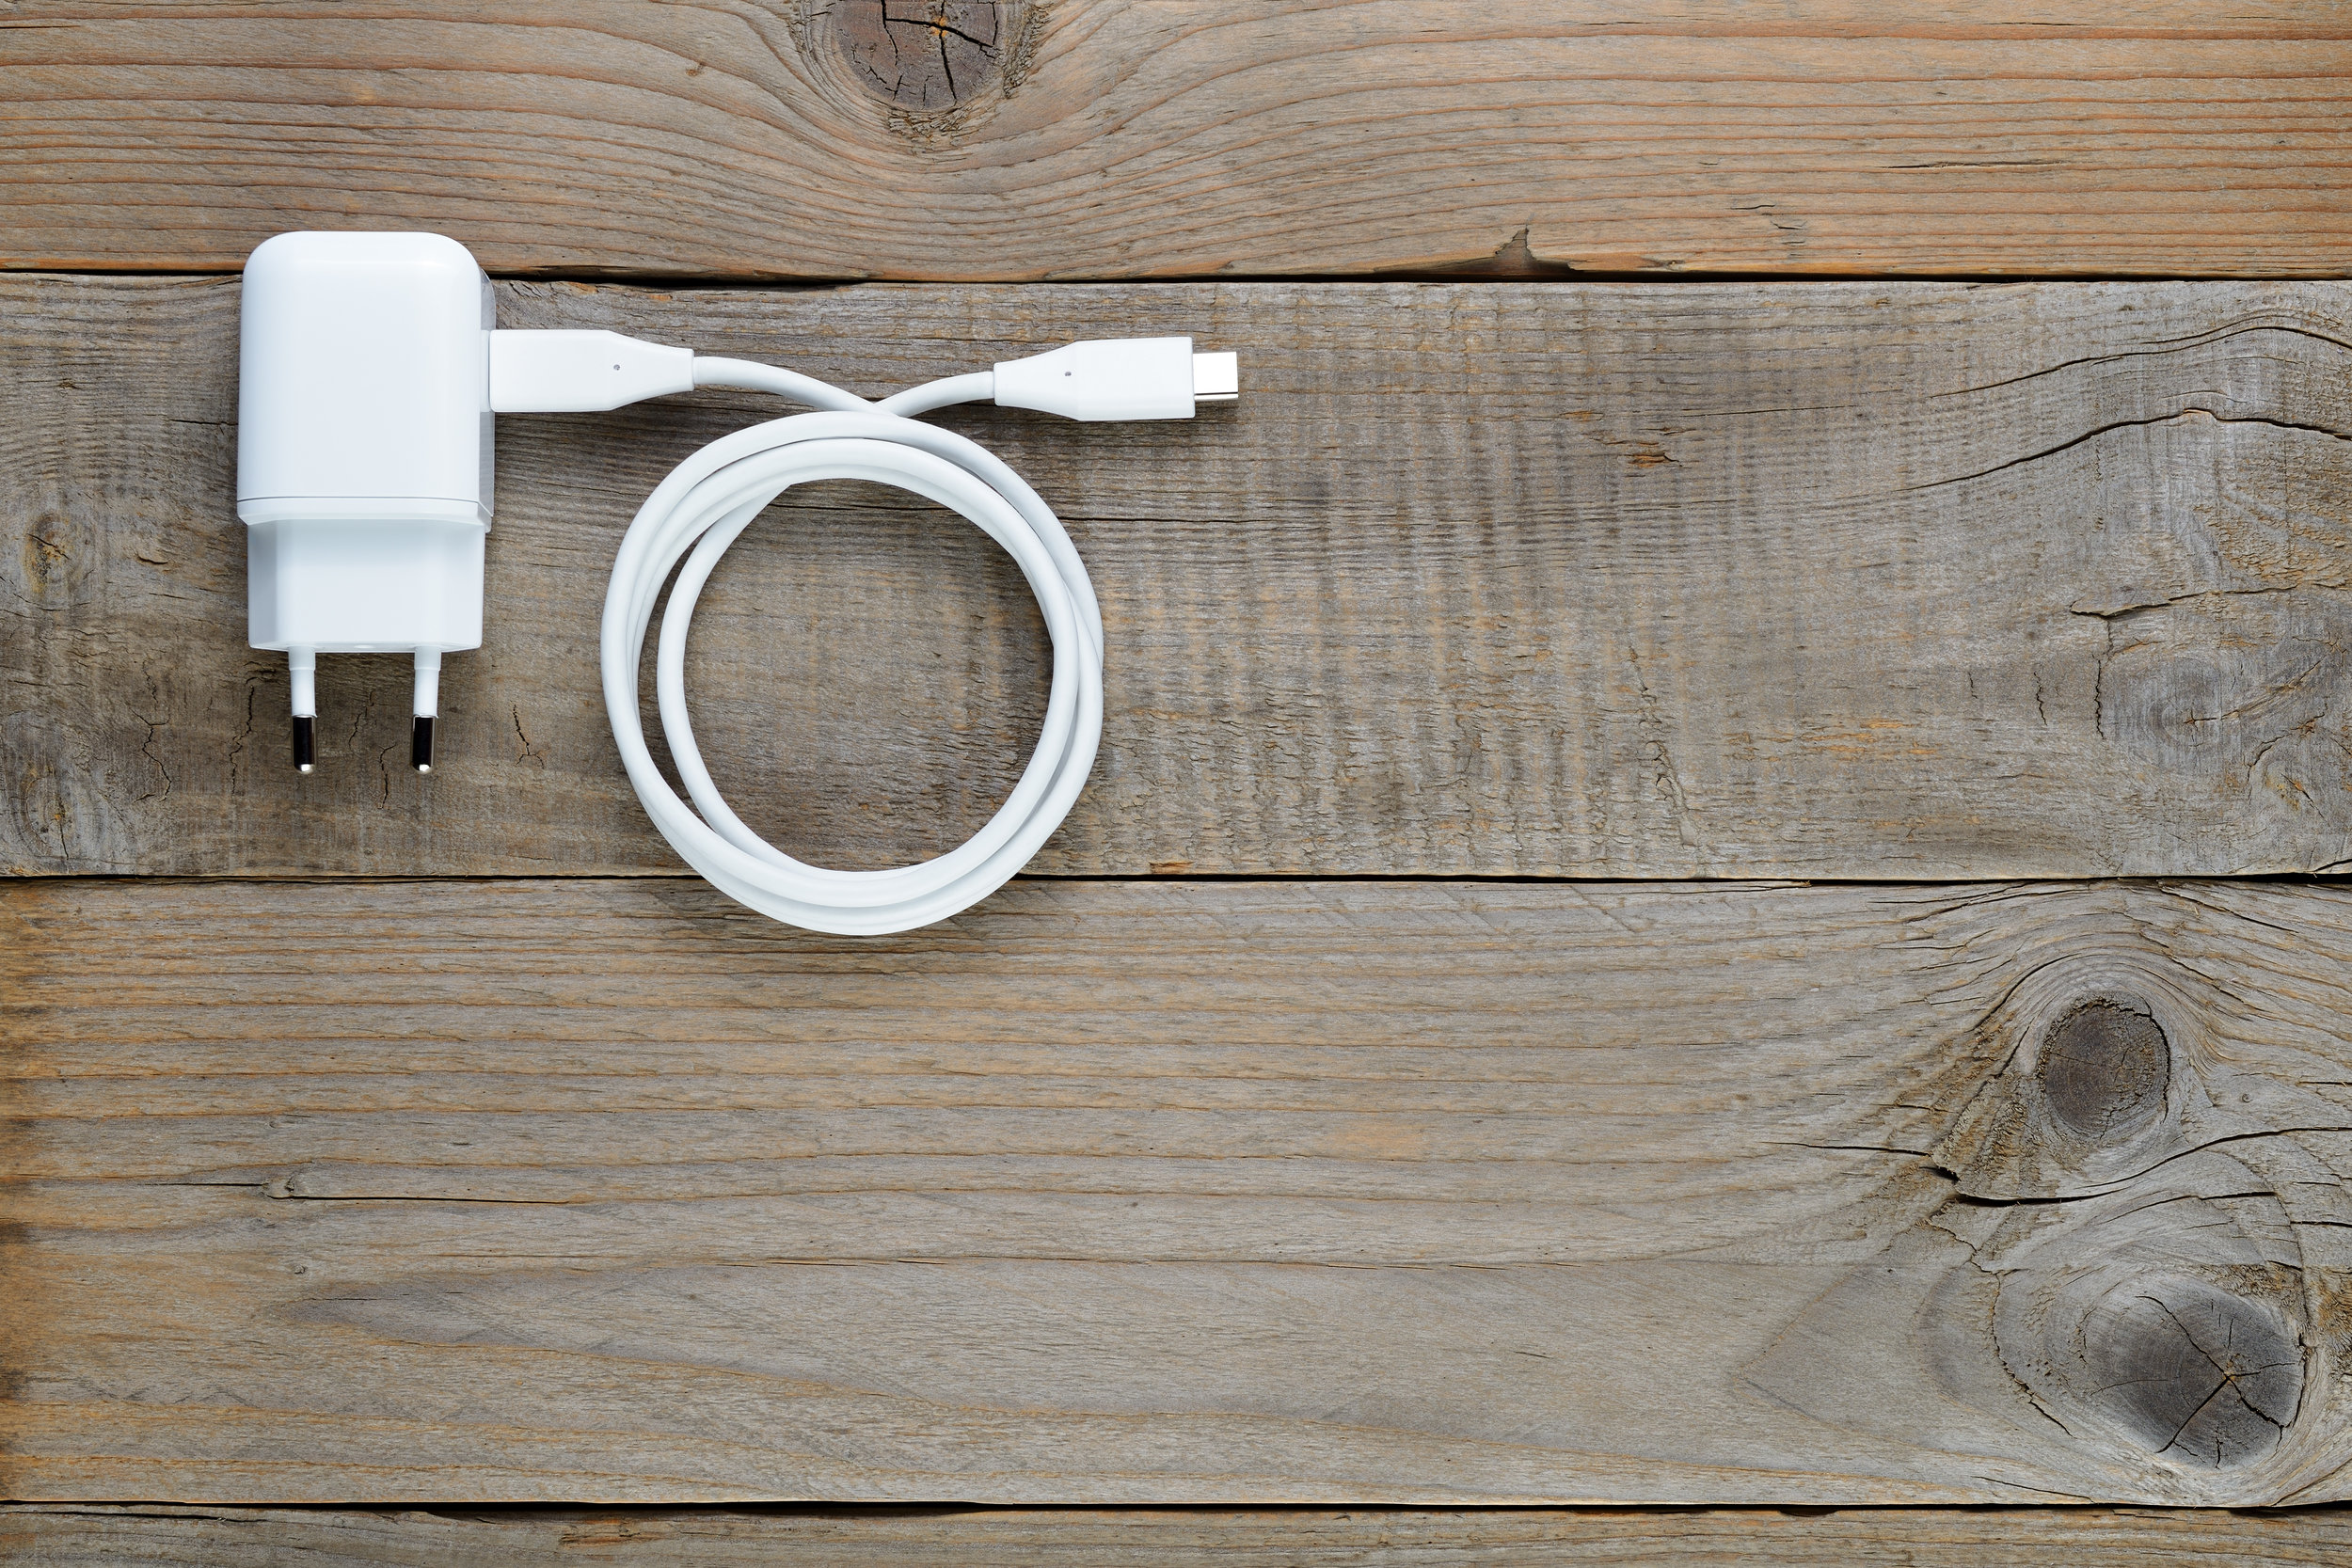 smartphone-or-tablet-charger-on-wooden-table-PSUKUE5.jpg